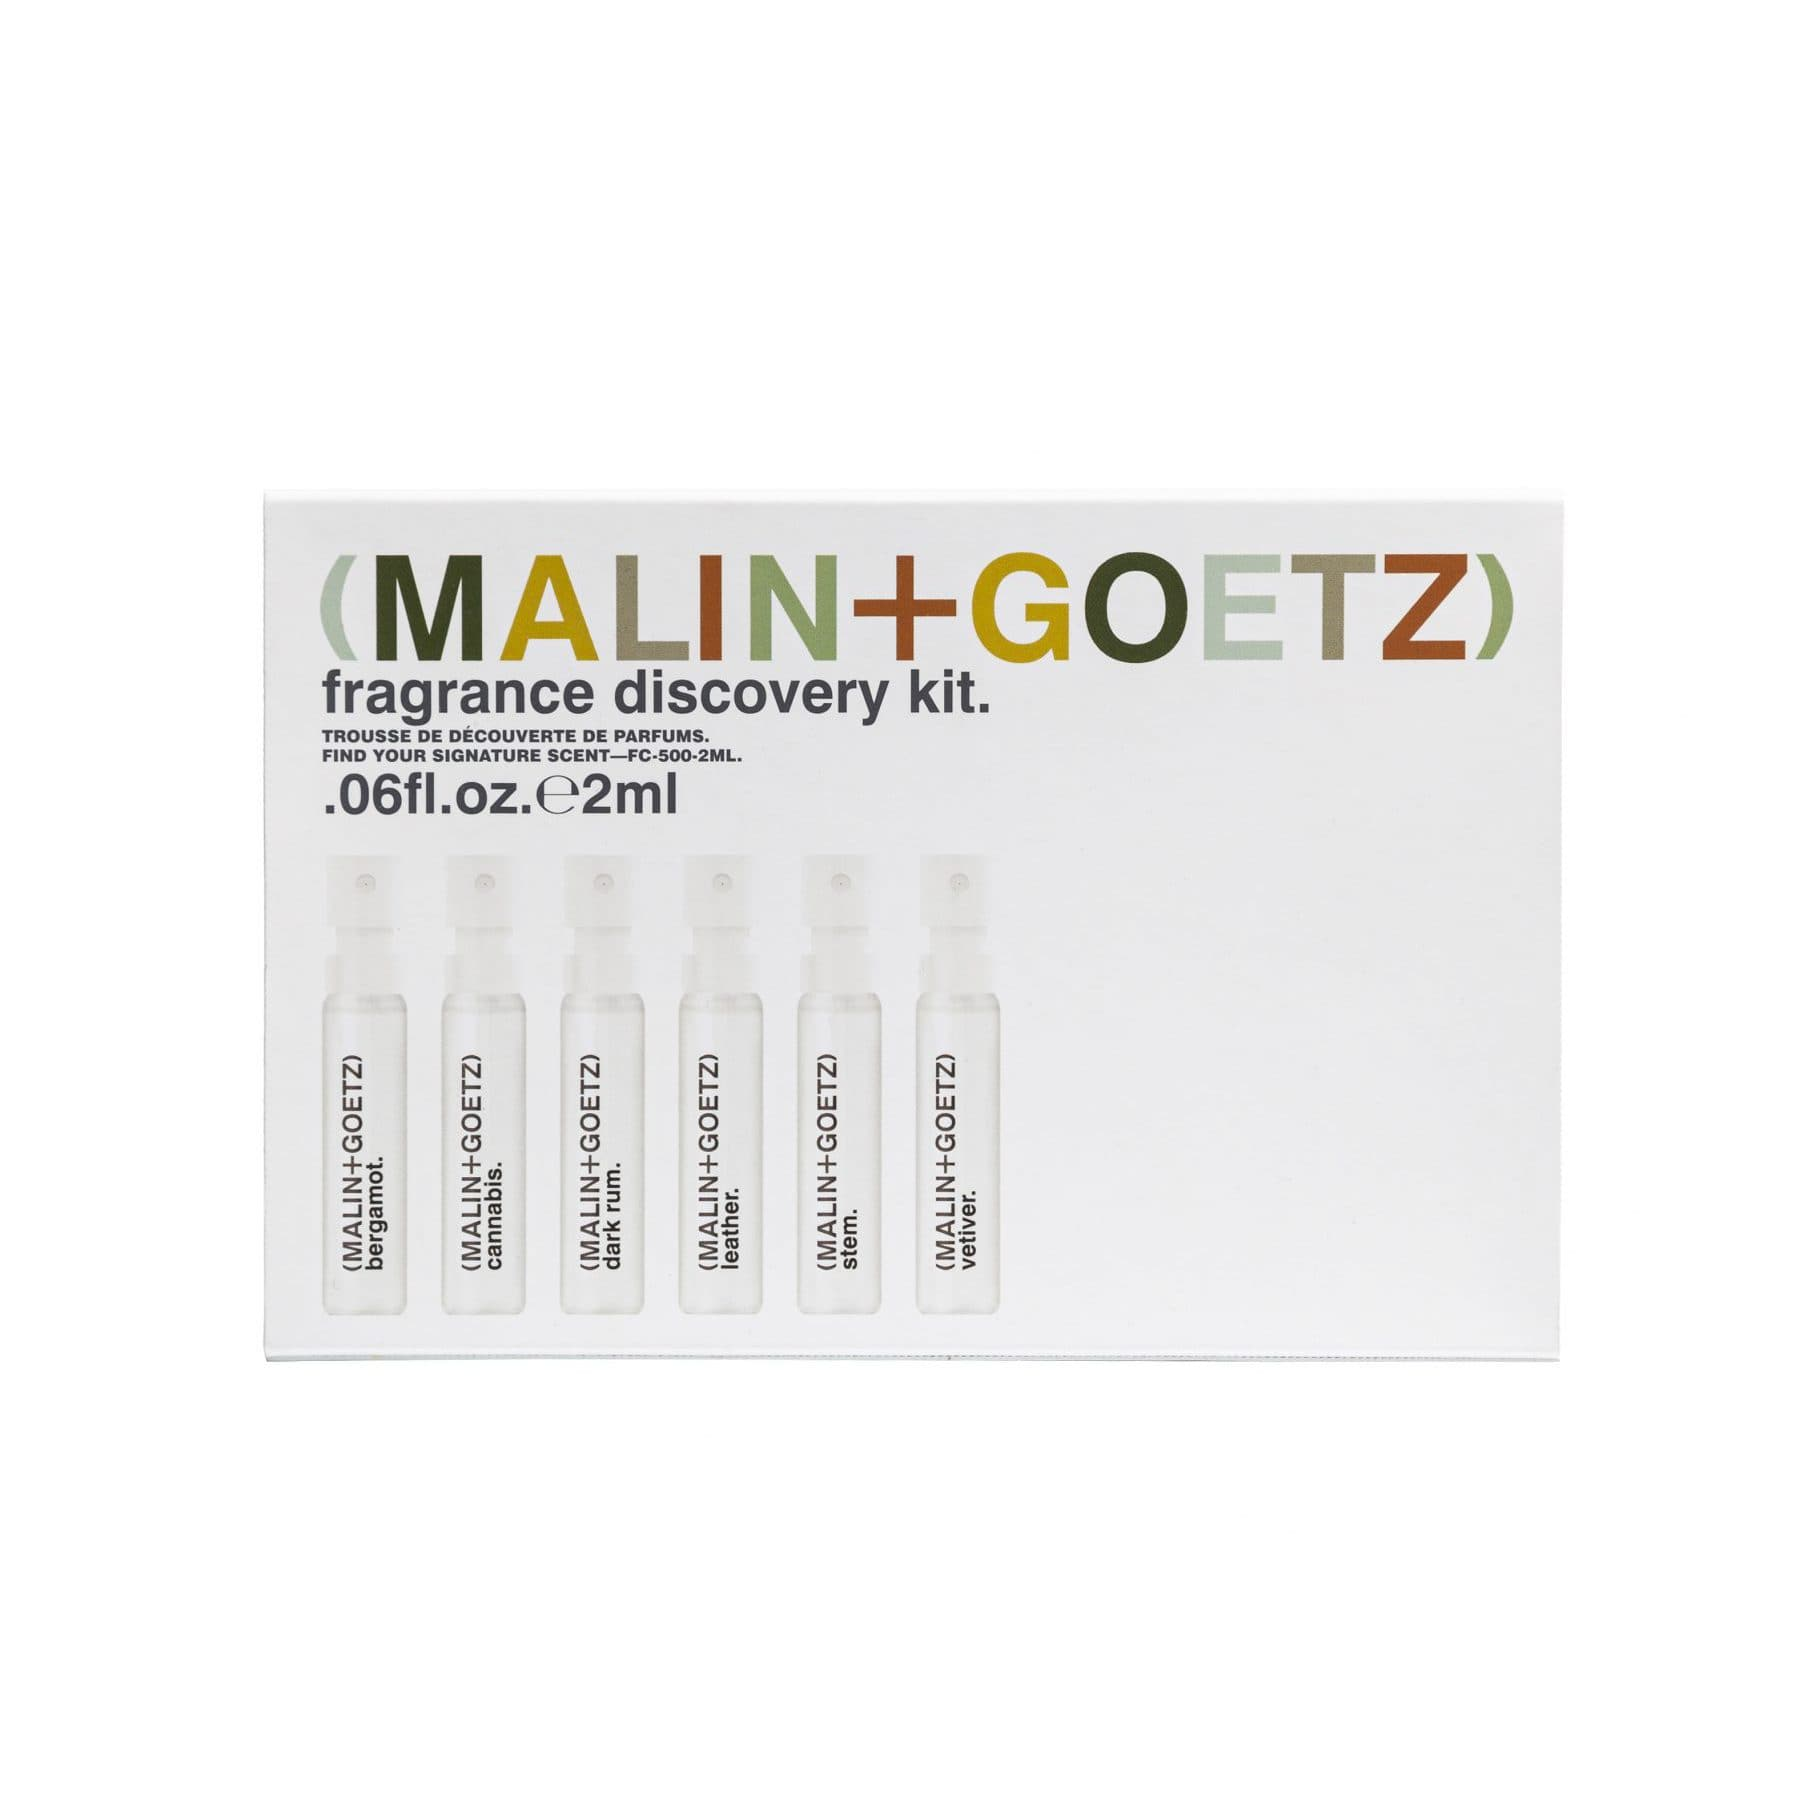 Fragnance Discovery Kit Malin+Goetz